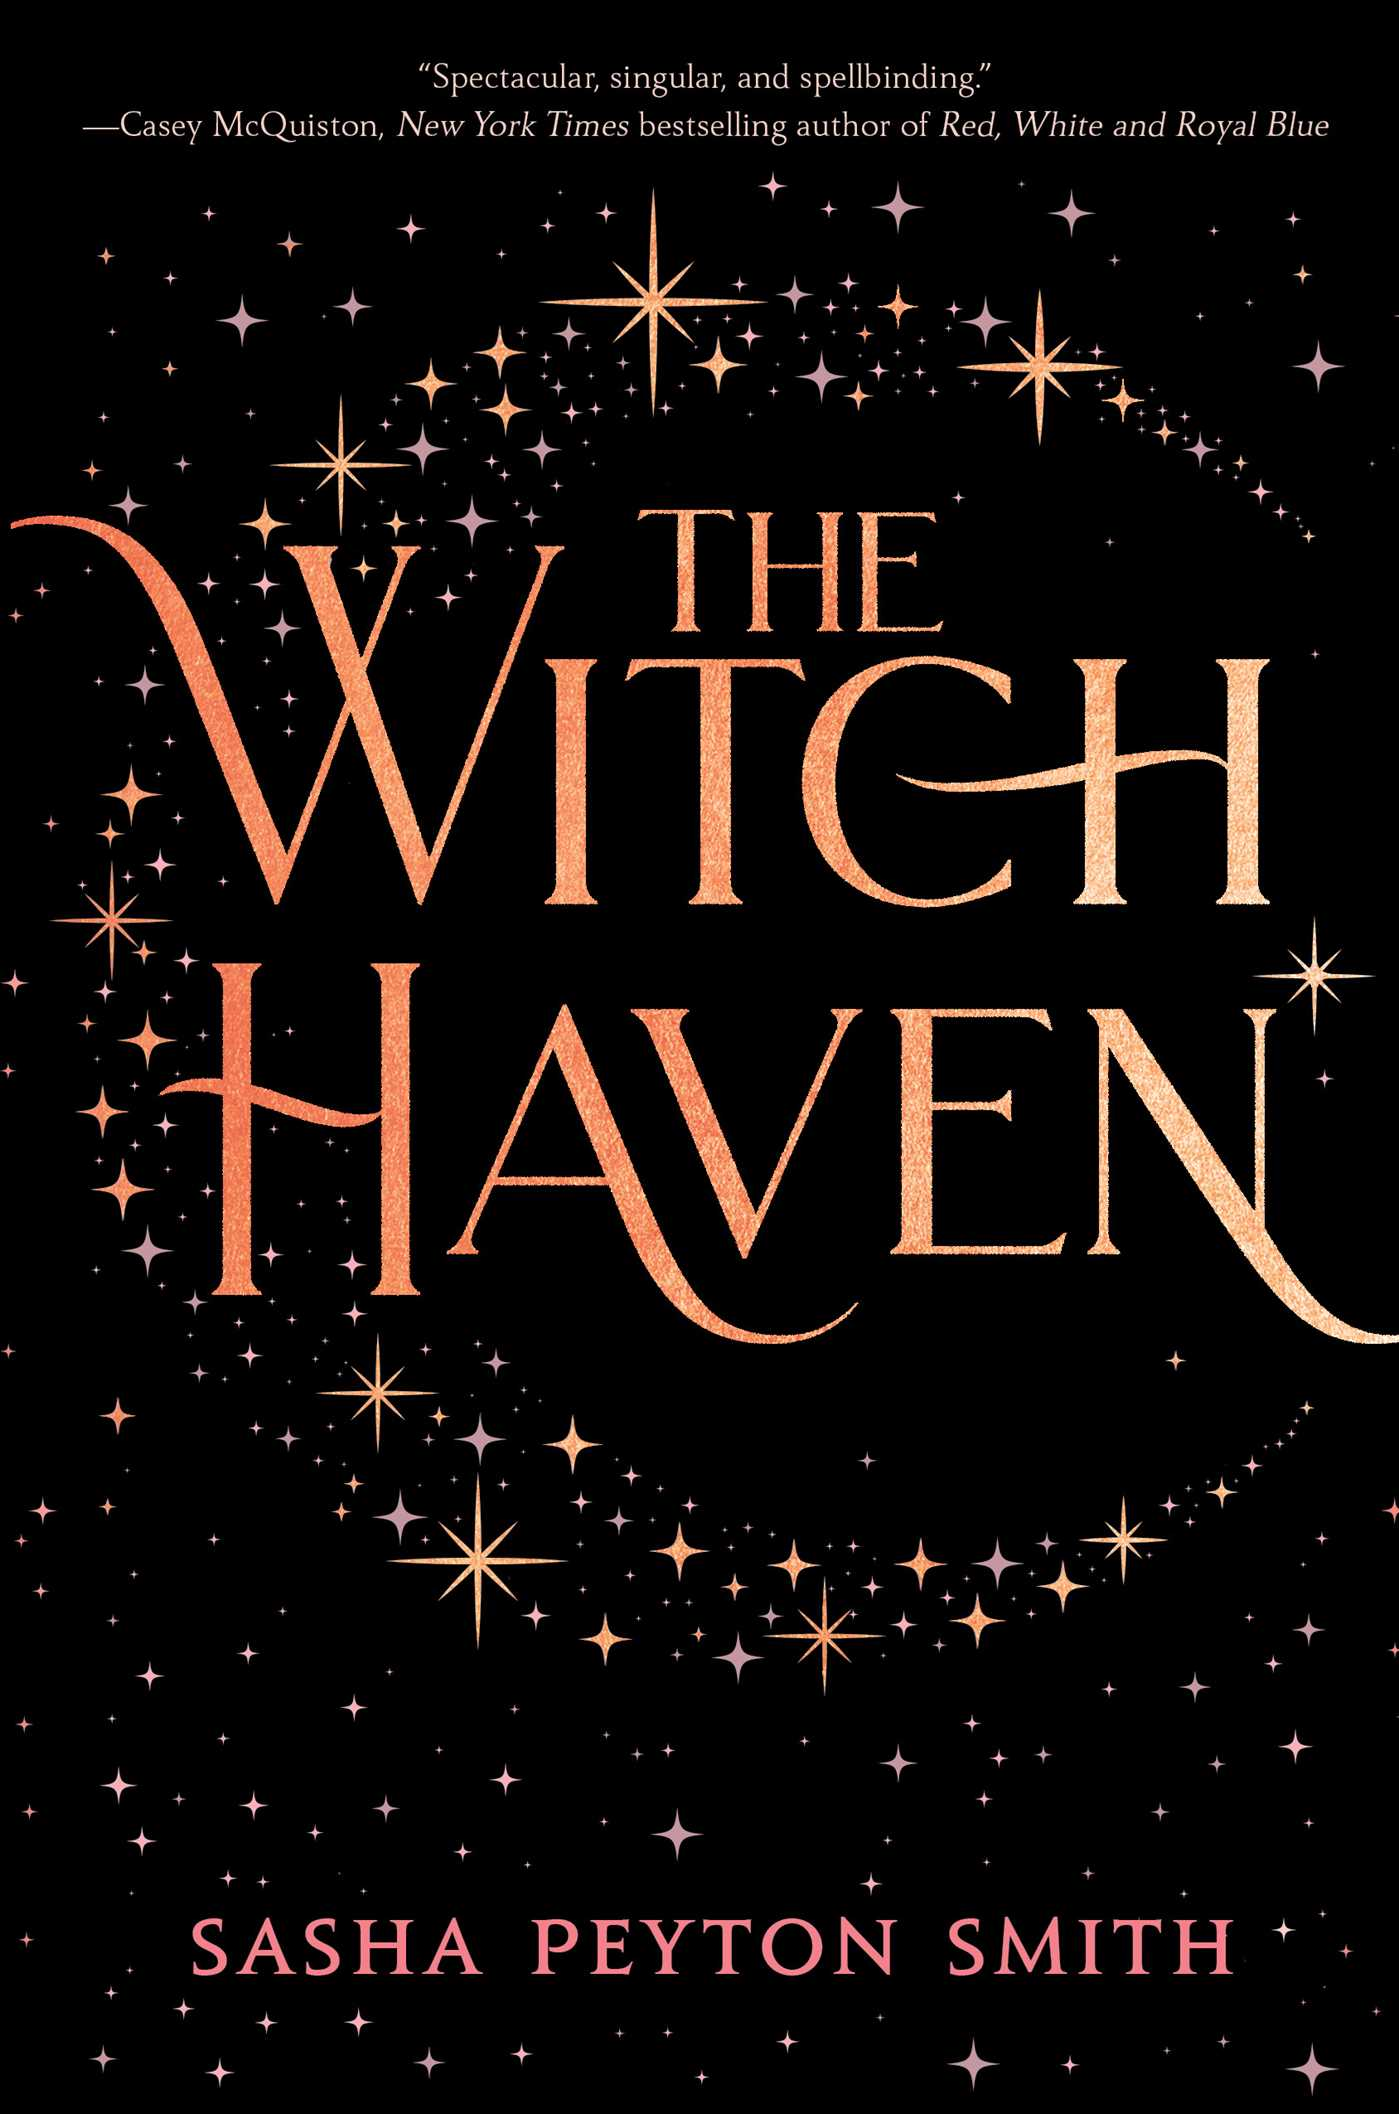 The Witch Haven By Sasha Peyton Smith Release Date? 2021 Debut Releases